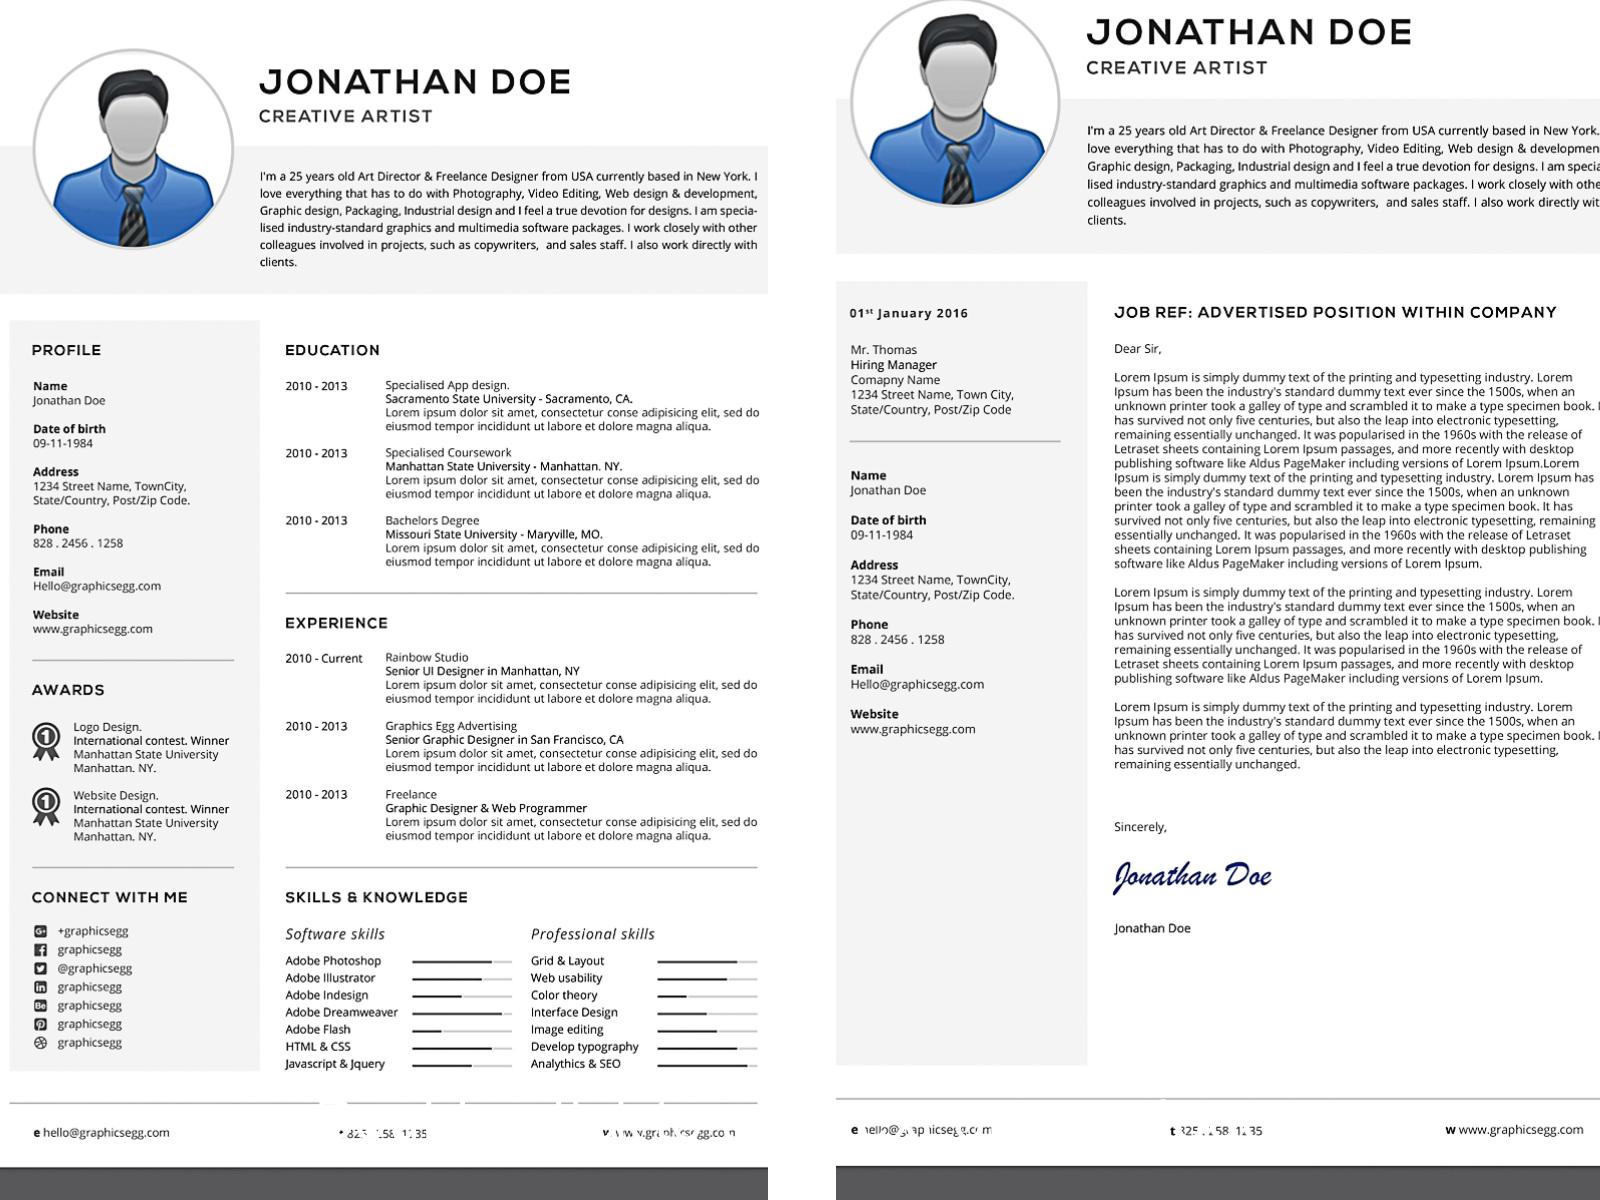 CV and cover letter professional set